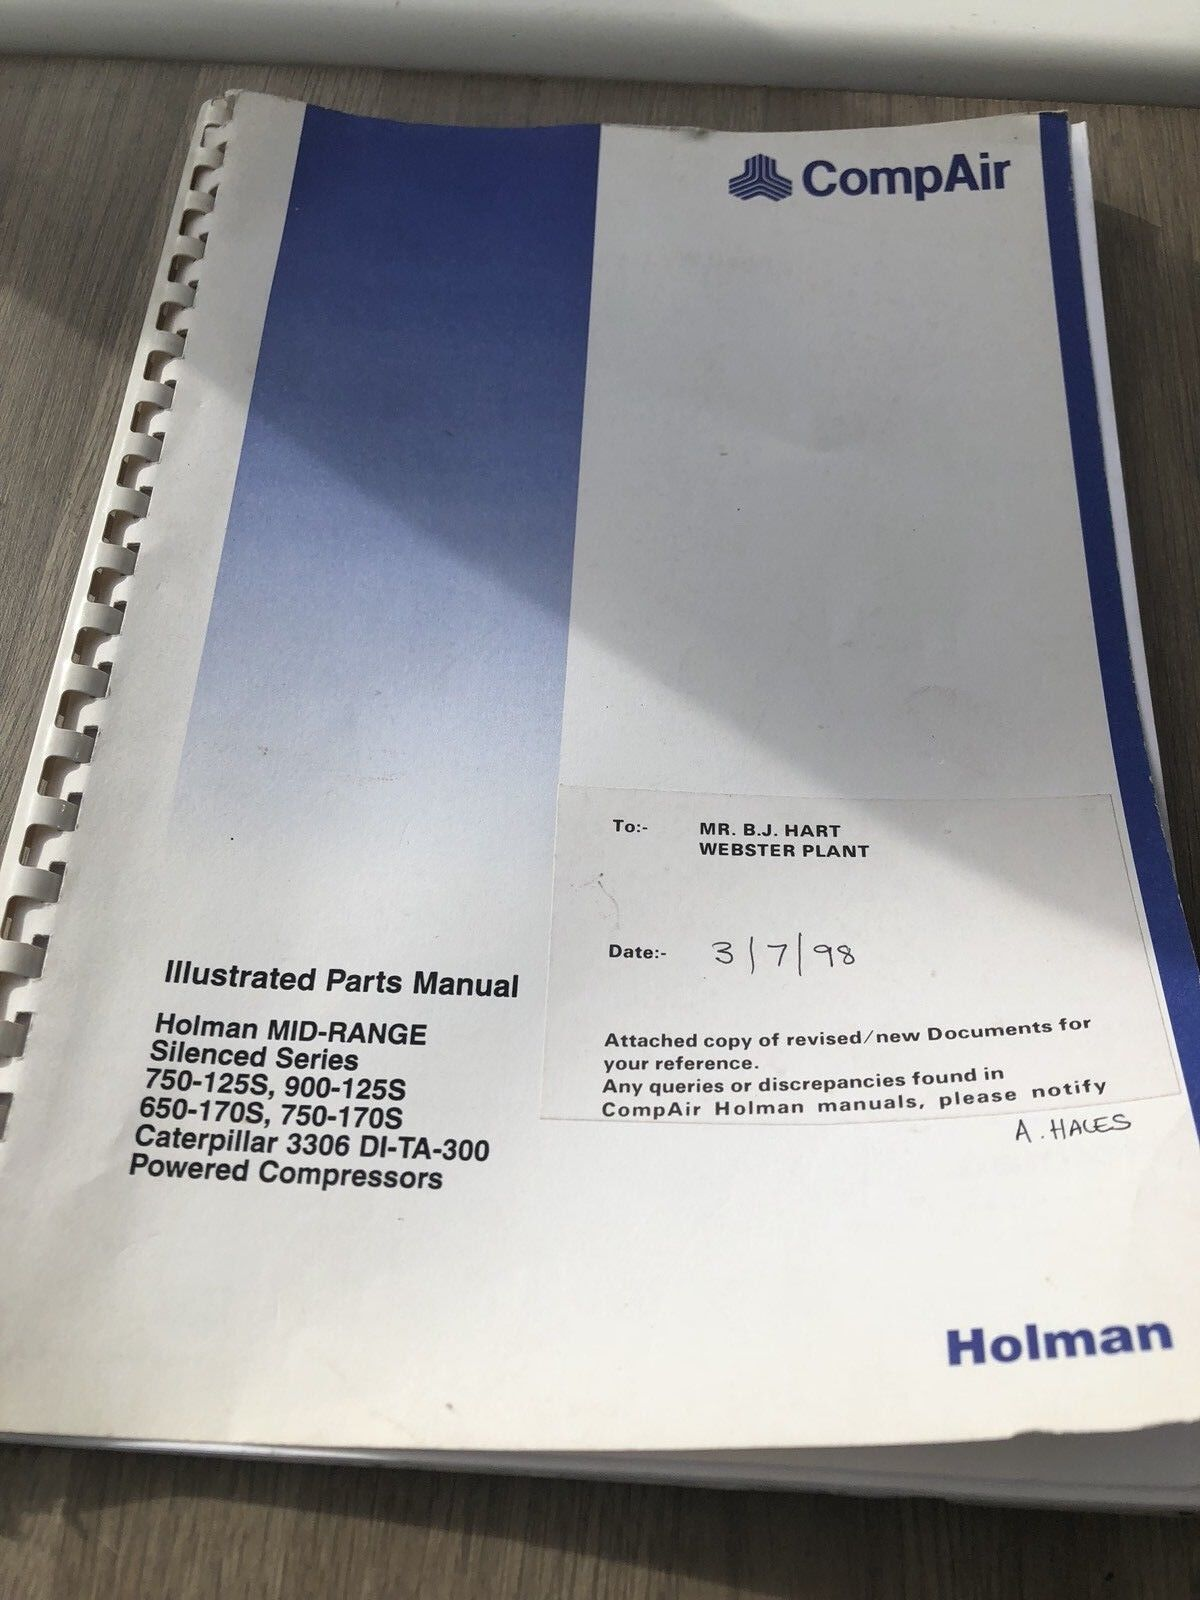 Compair Holman 750-125 900-125 750-170 Portable Air Compressor Parts Manual  1 of 5Only 1 available See More